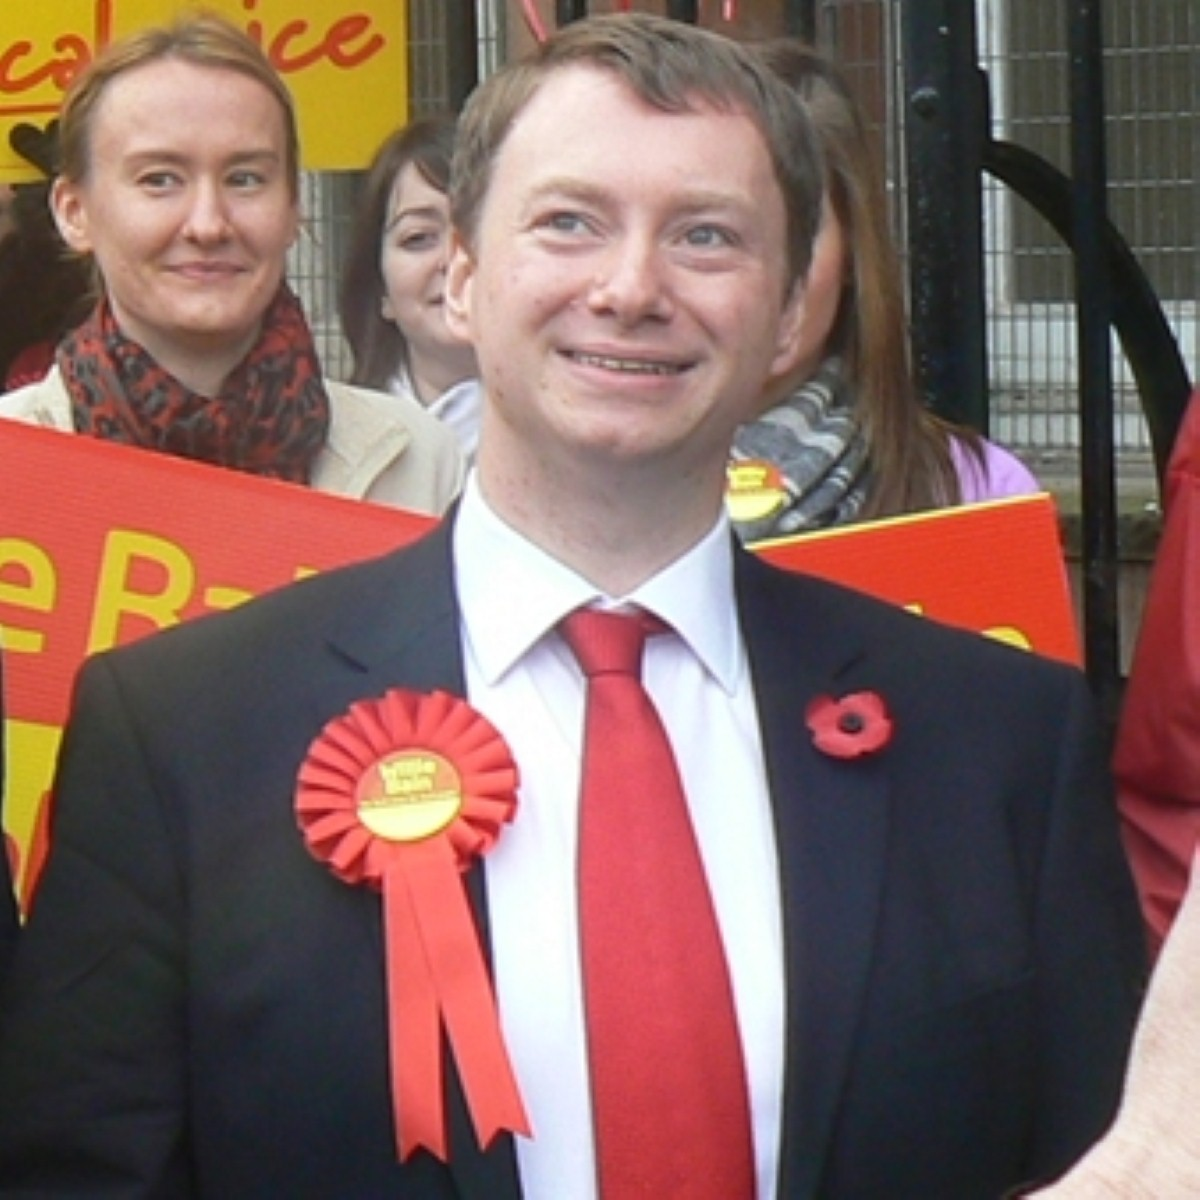 A good day for Labour's newest MP Willie Bain